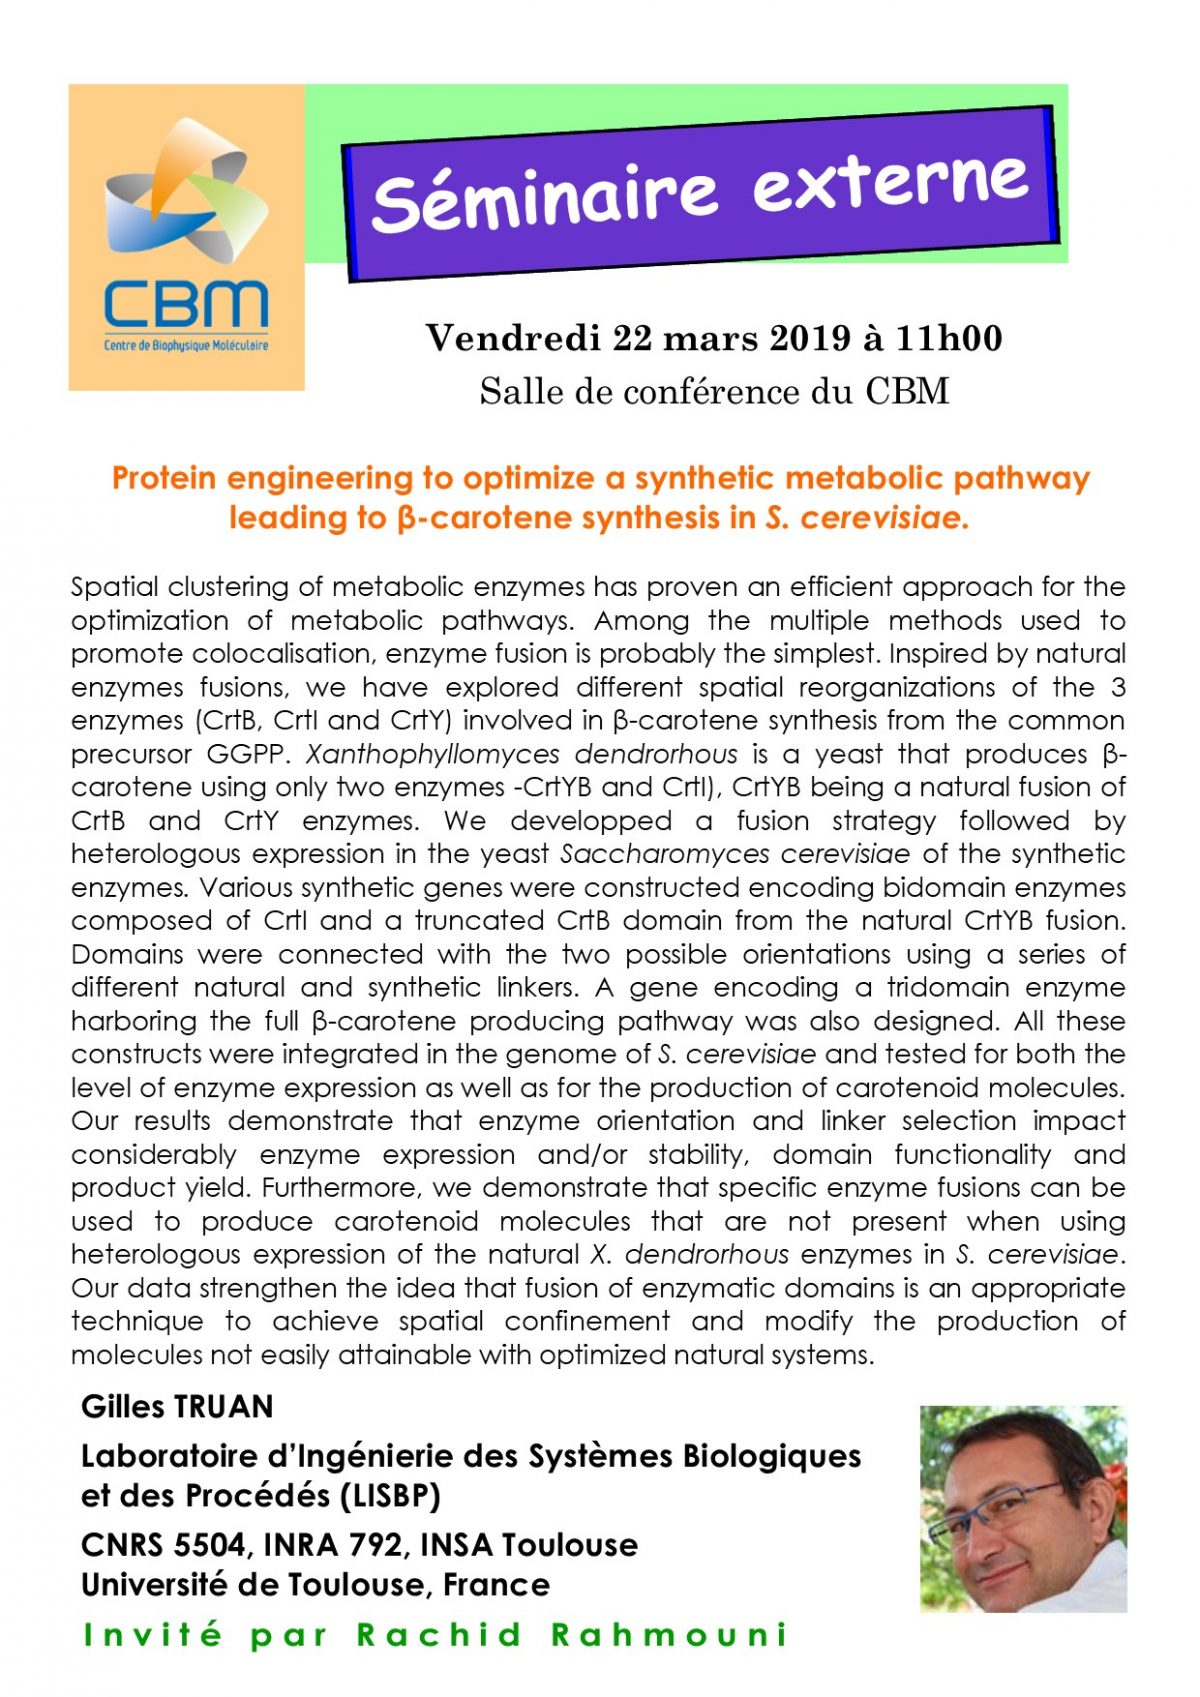 March 22, 2019 – external seminar of Gilles TRUAN